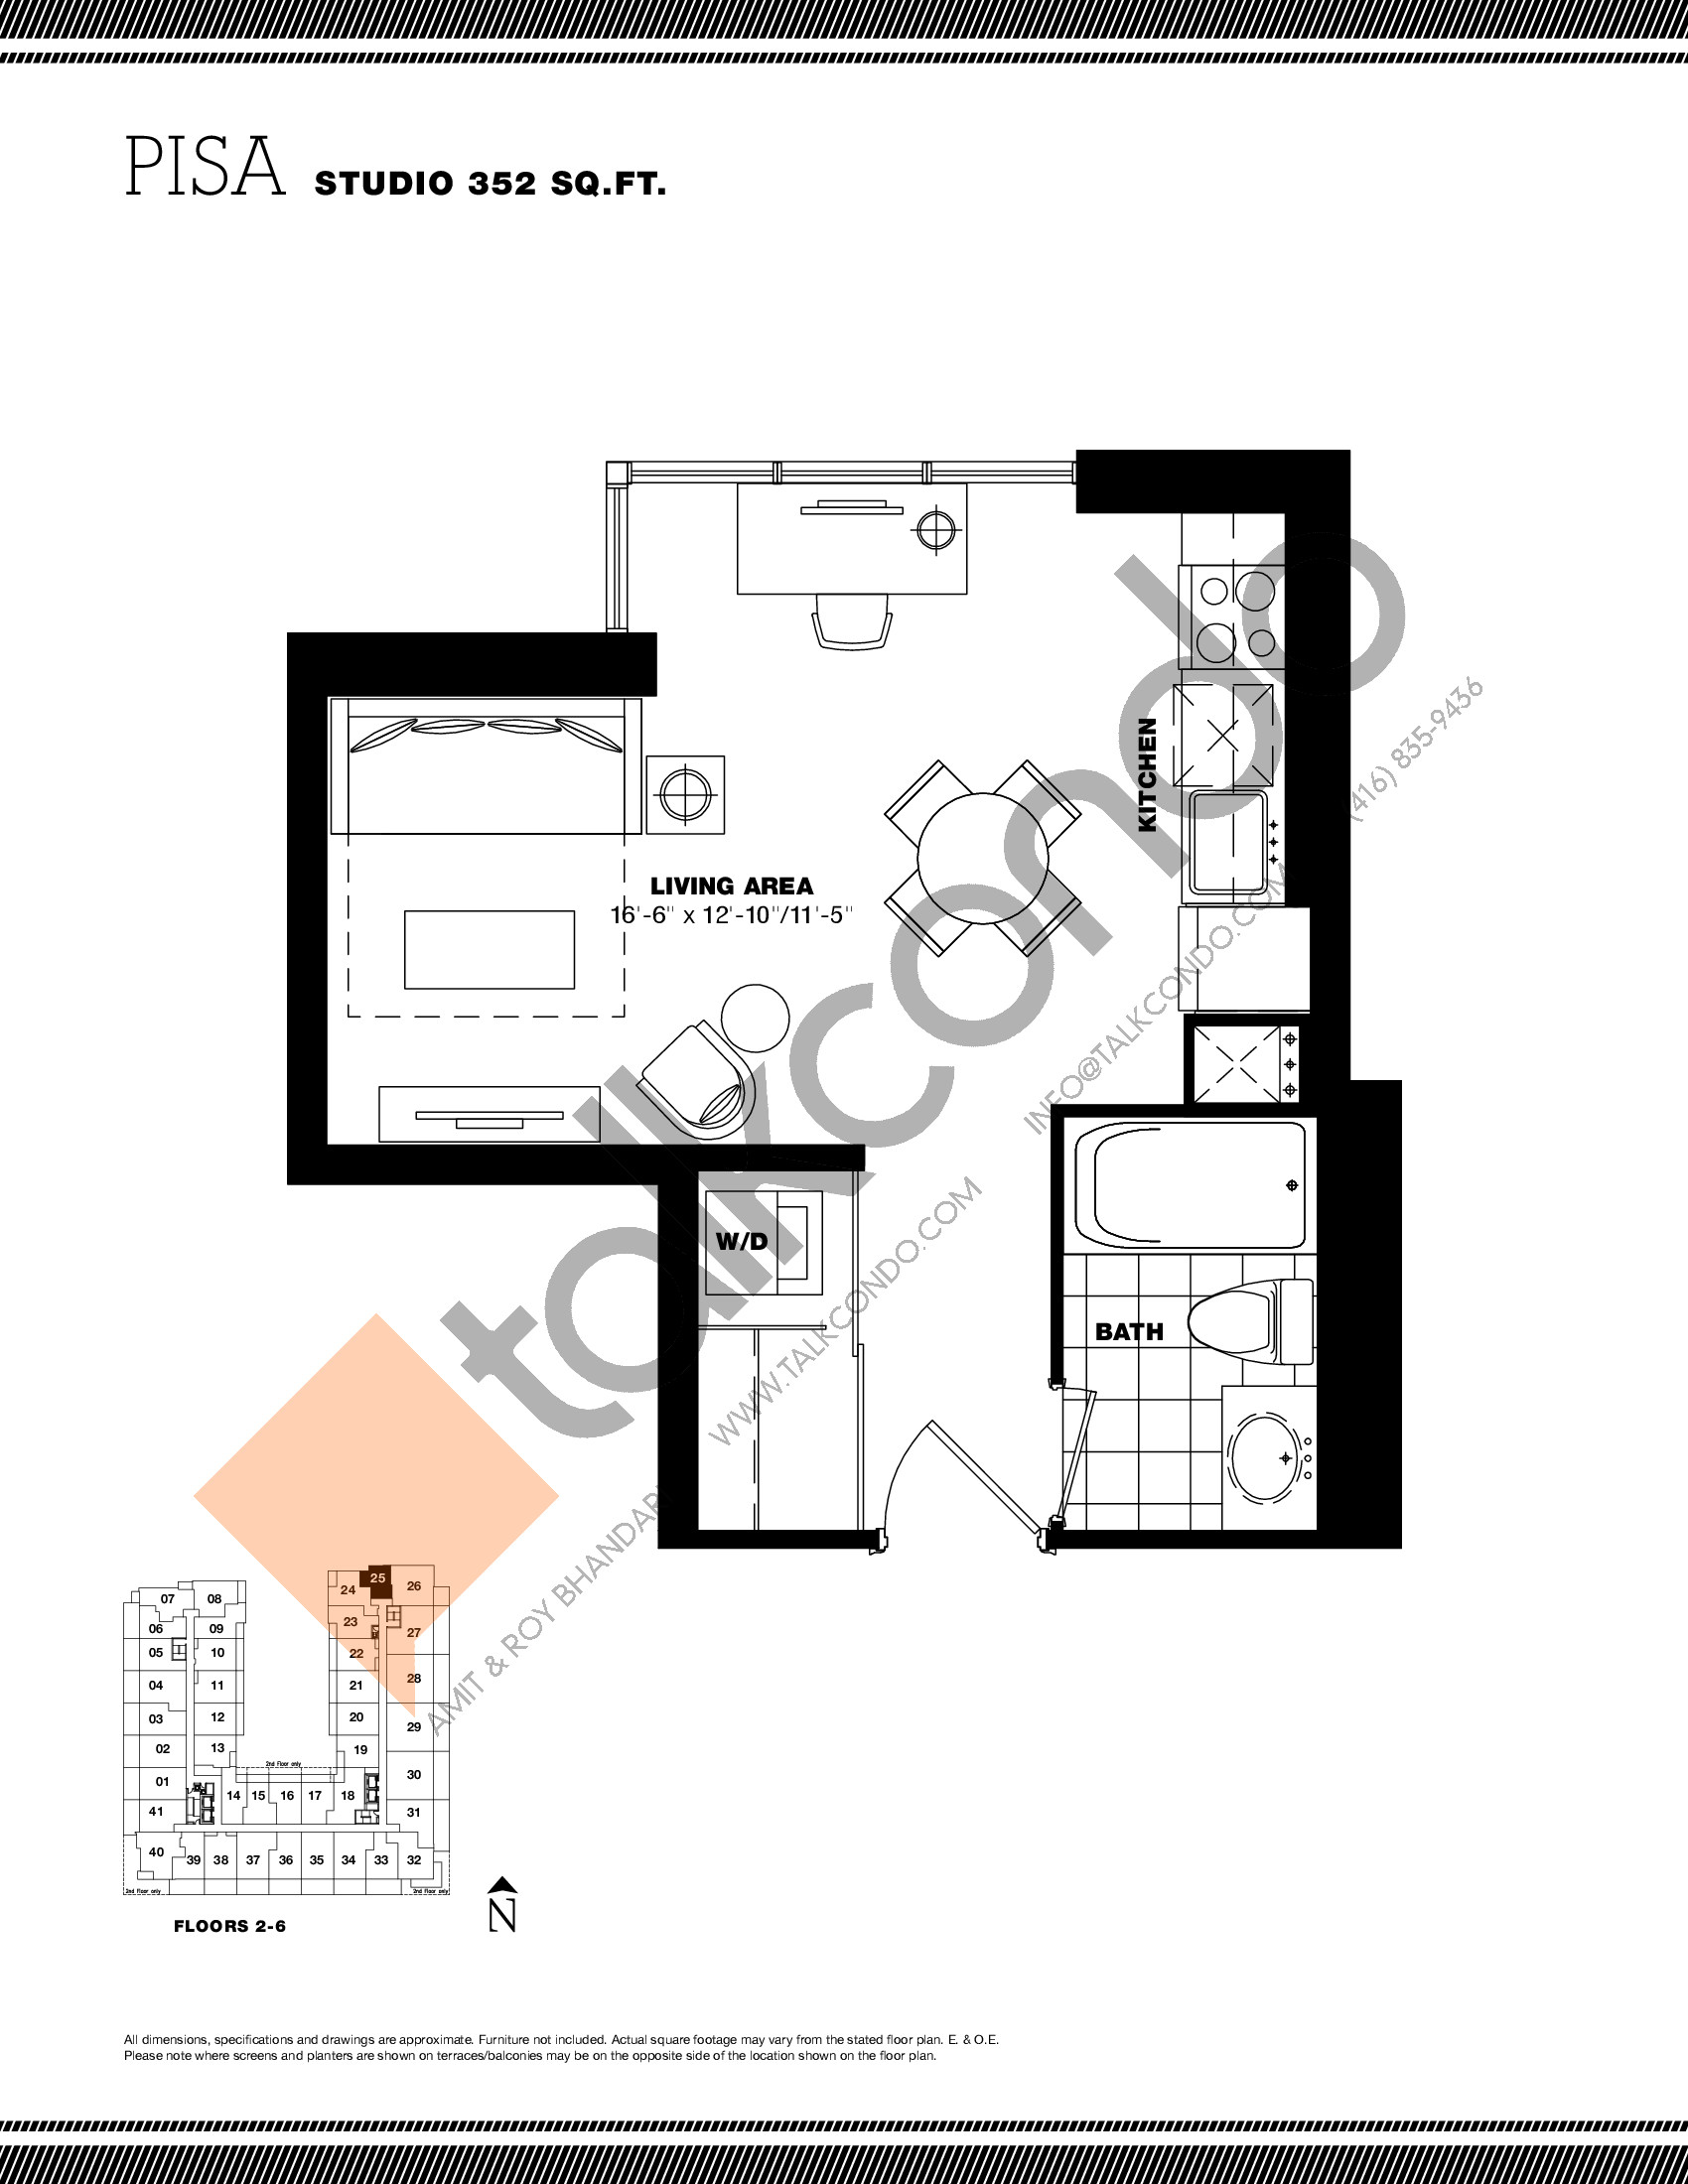 Pisa Floor Plan at Residenze Palazzo at Treviso 3 Condos - 352 sq.ft